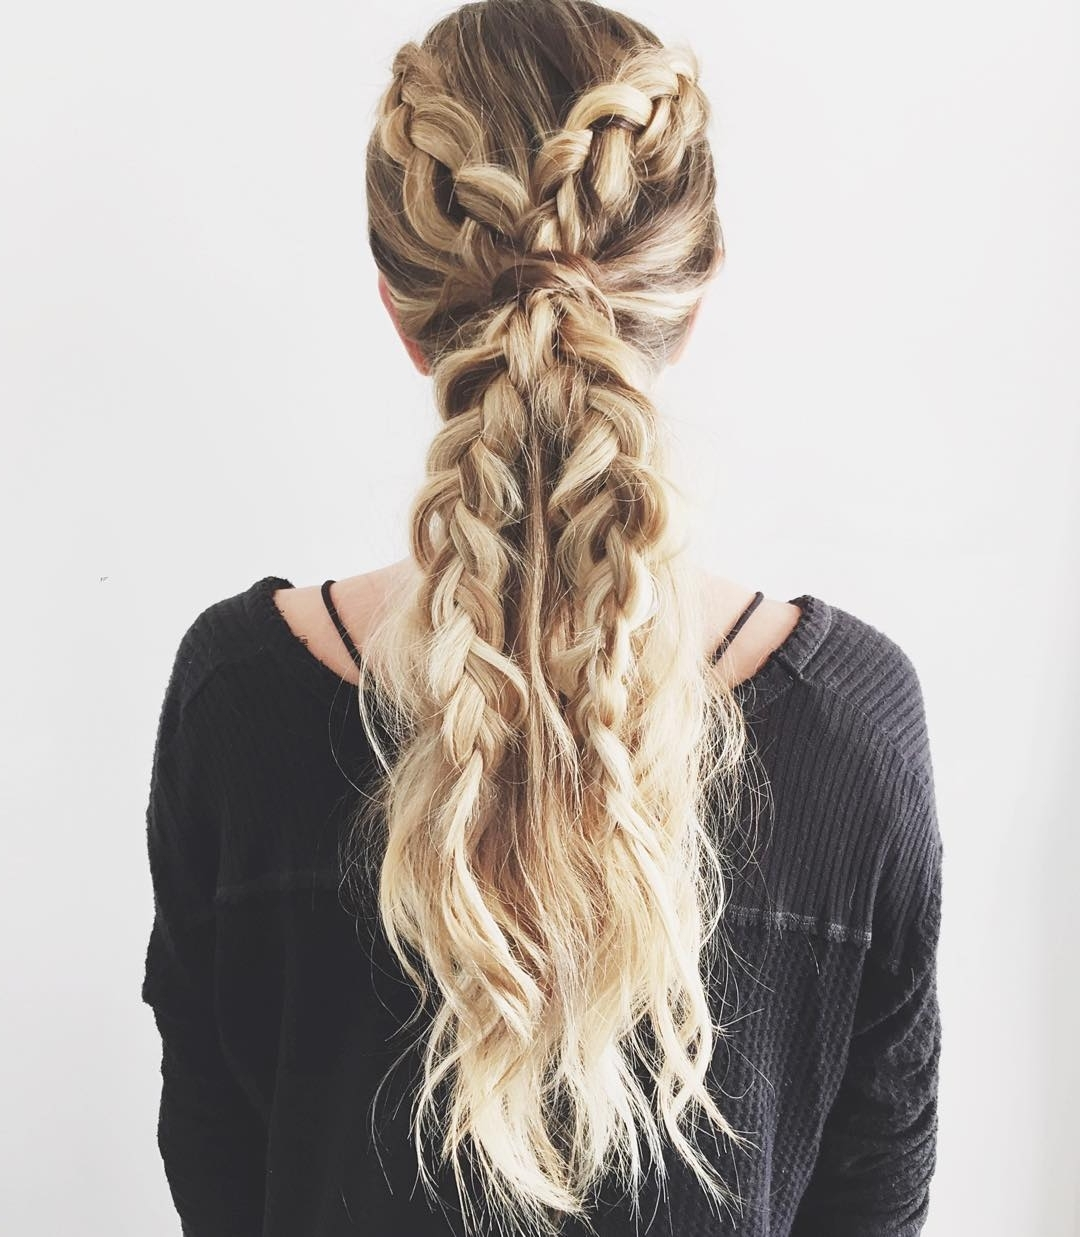 Fashionable Braided Crown Pony Hairstyles With 30 Braided Ponytail Hairstyles To Slay In  (View 7 of 20)